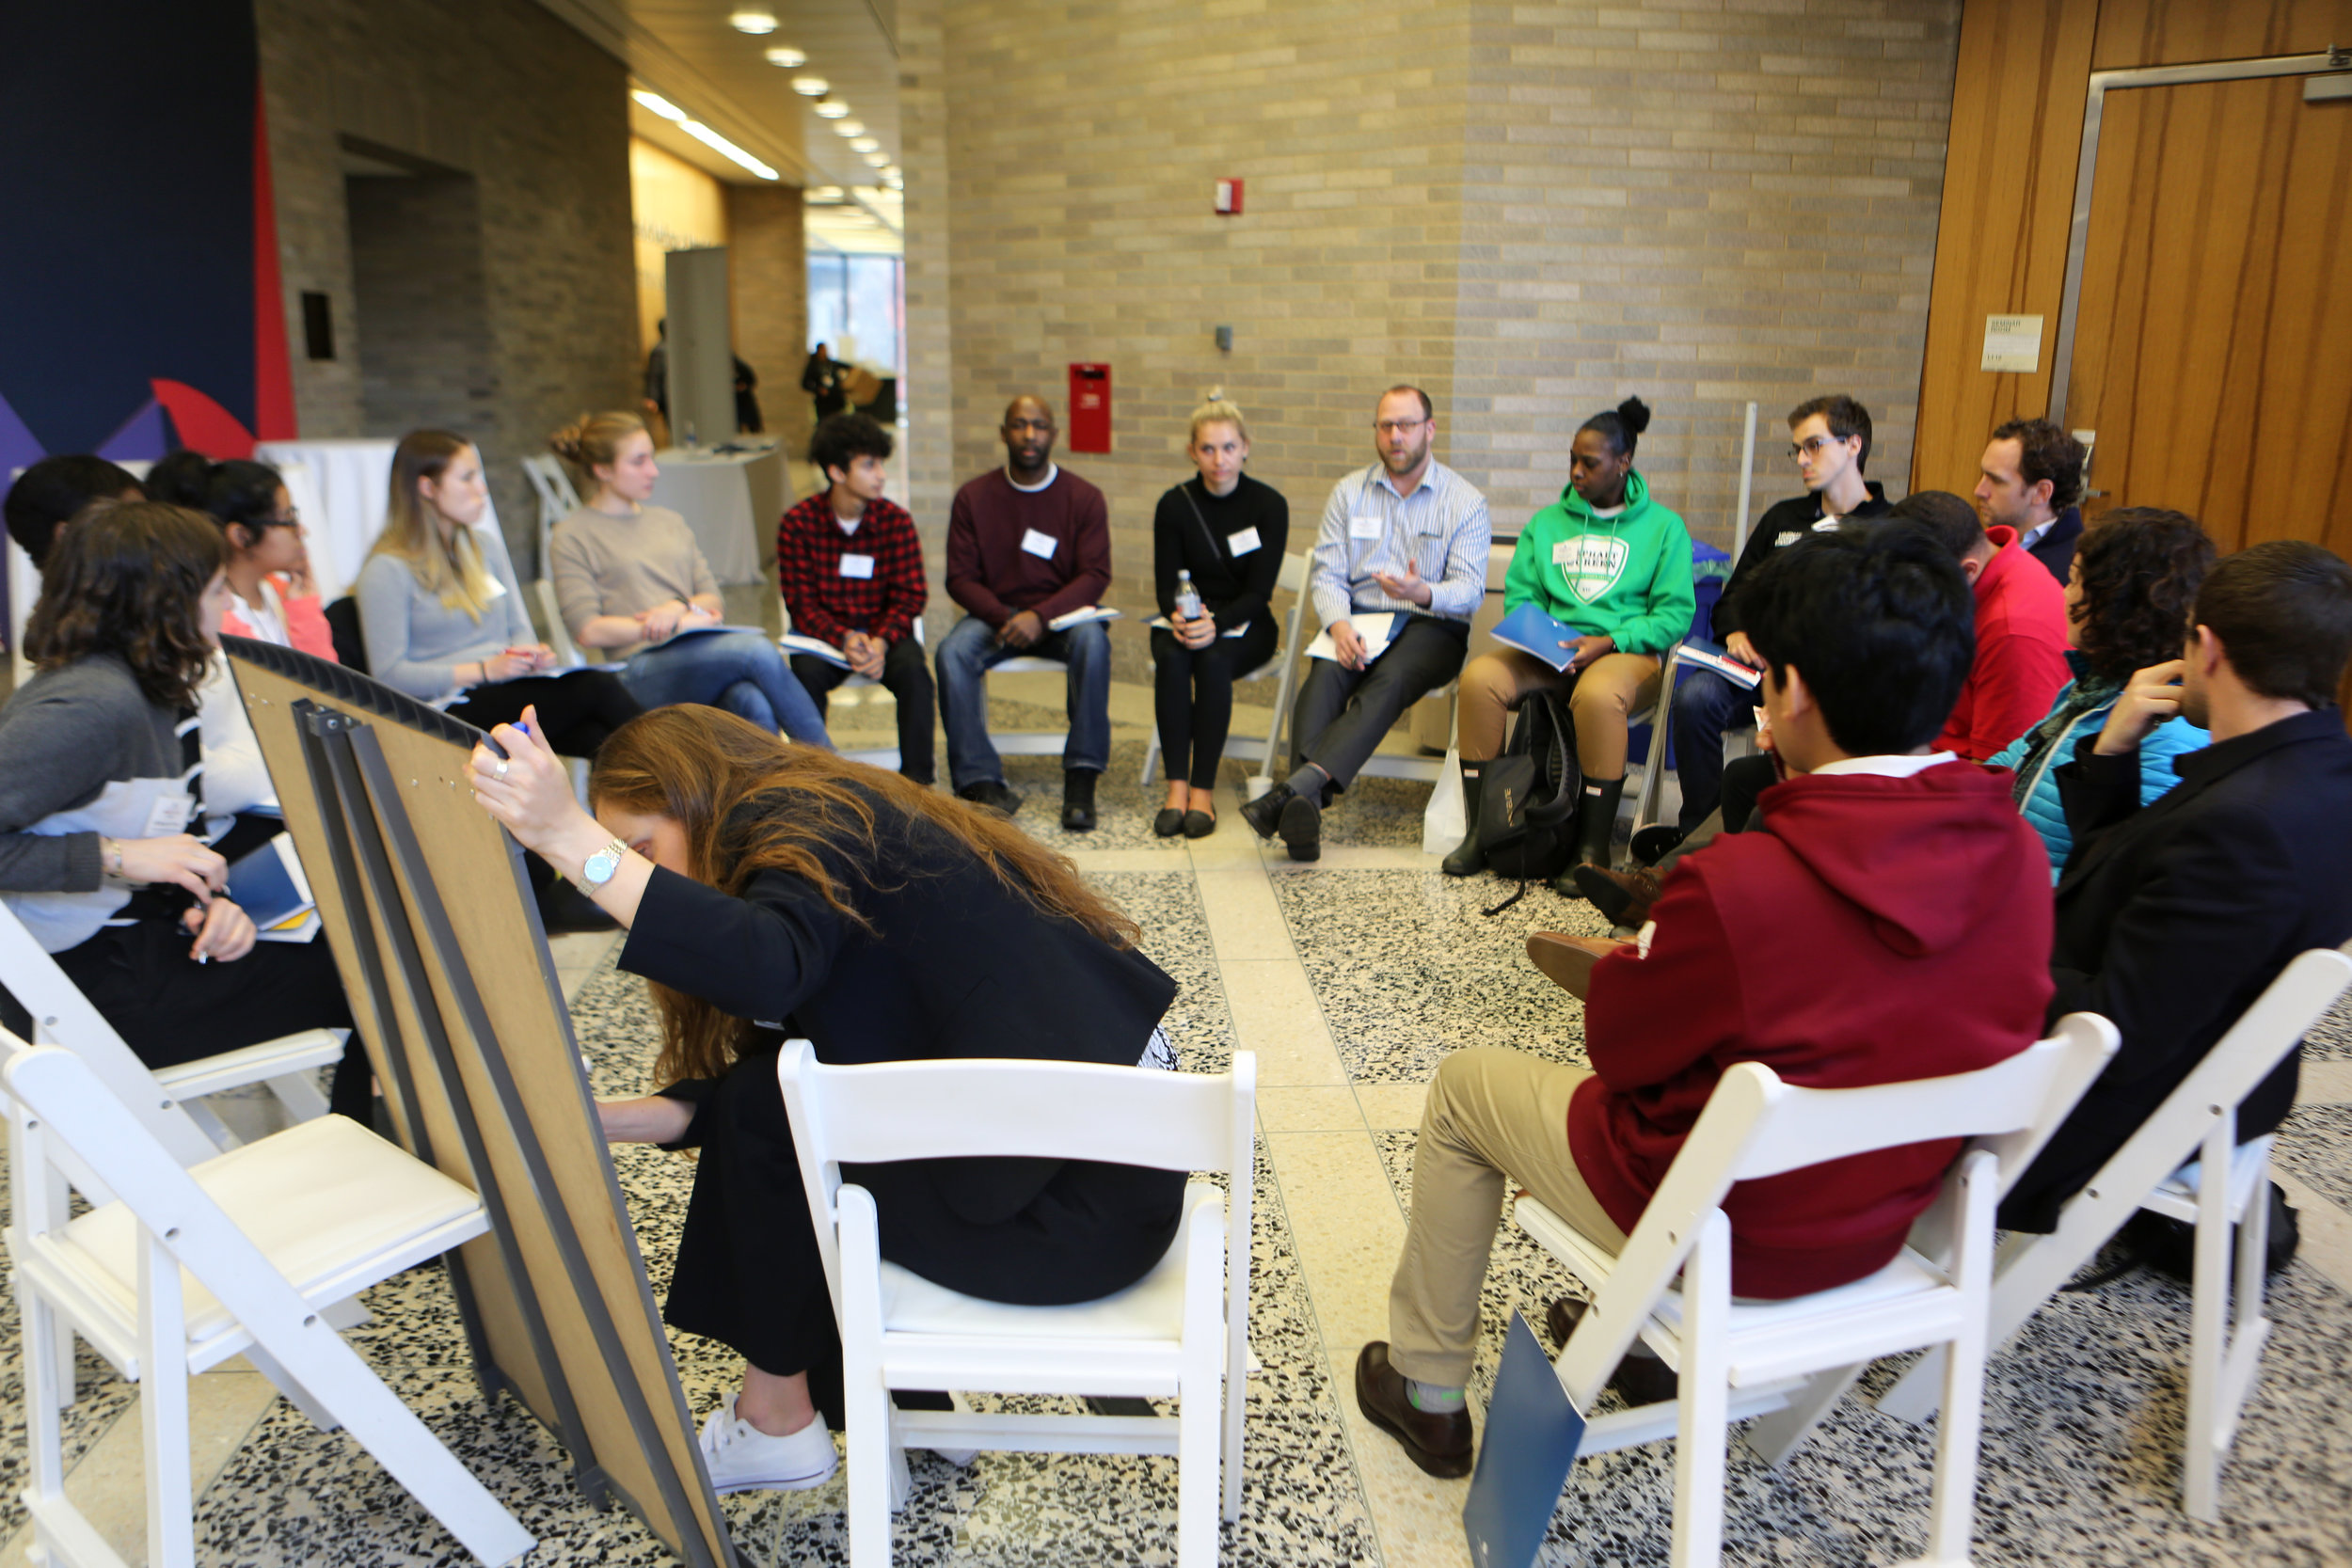 Aspen Institute_Harlem Huddle_Group Discussion_CDGPhoto_20180123.jpg